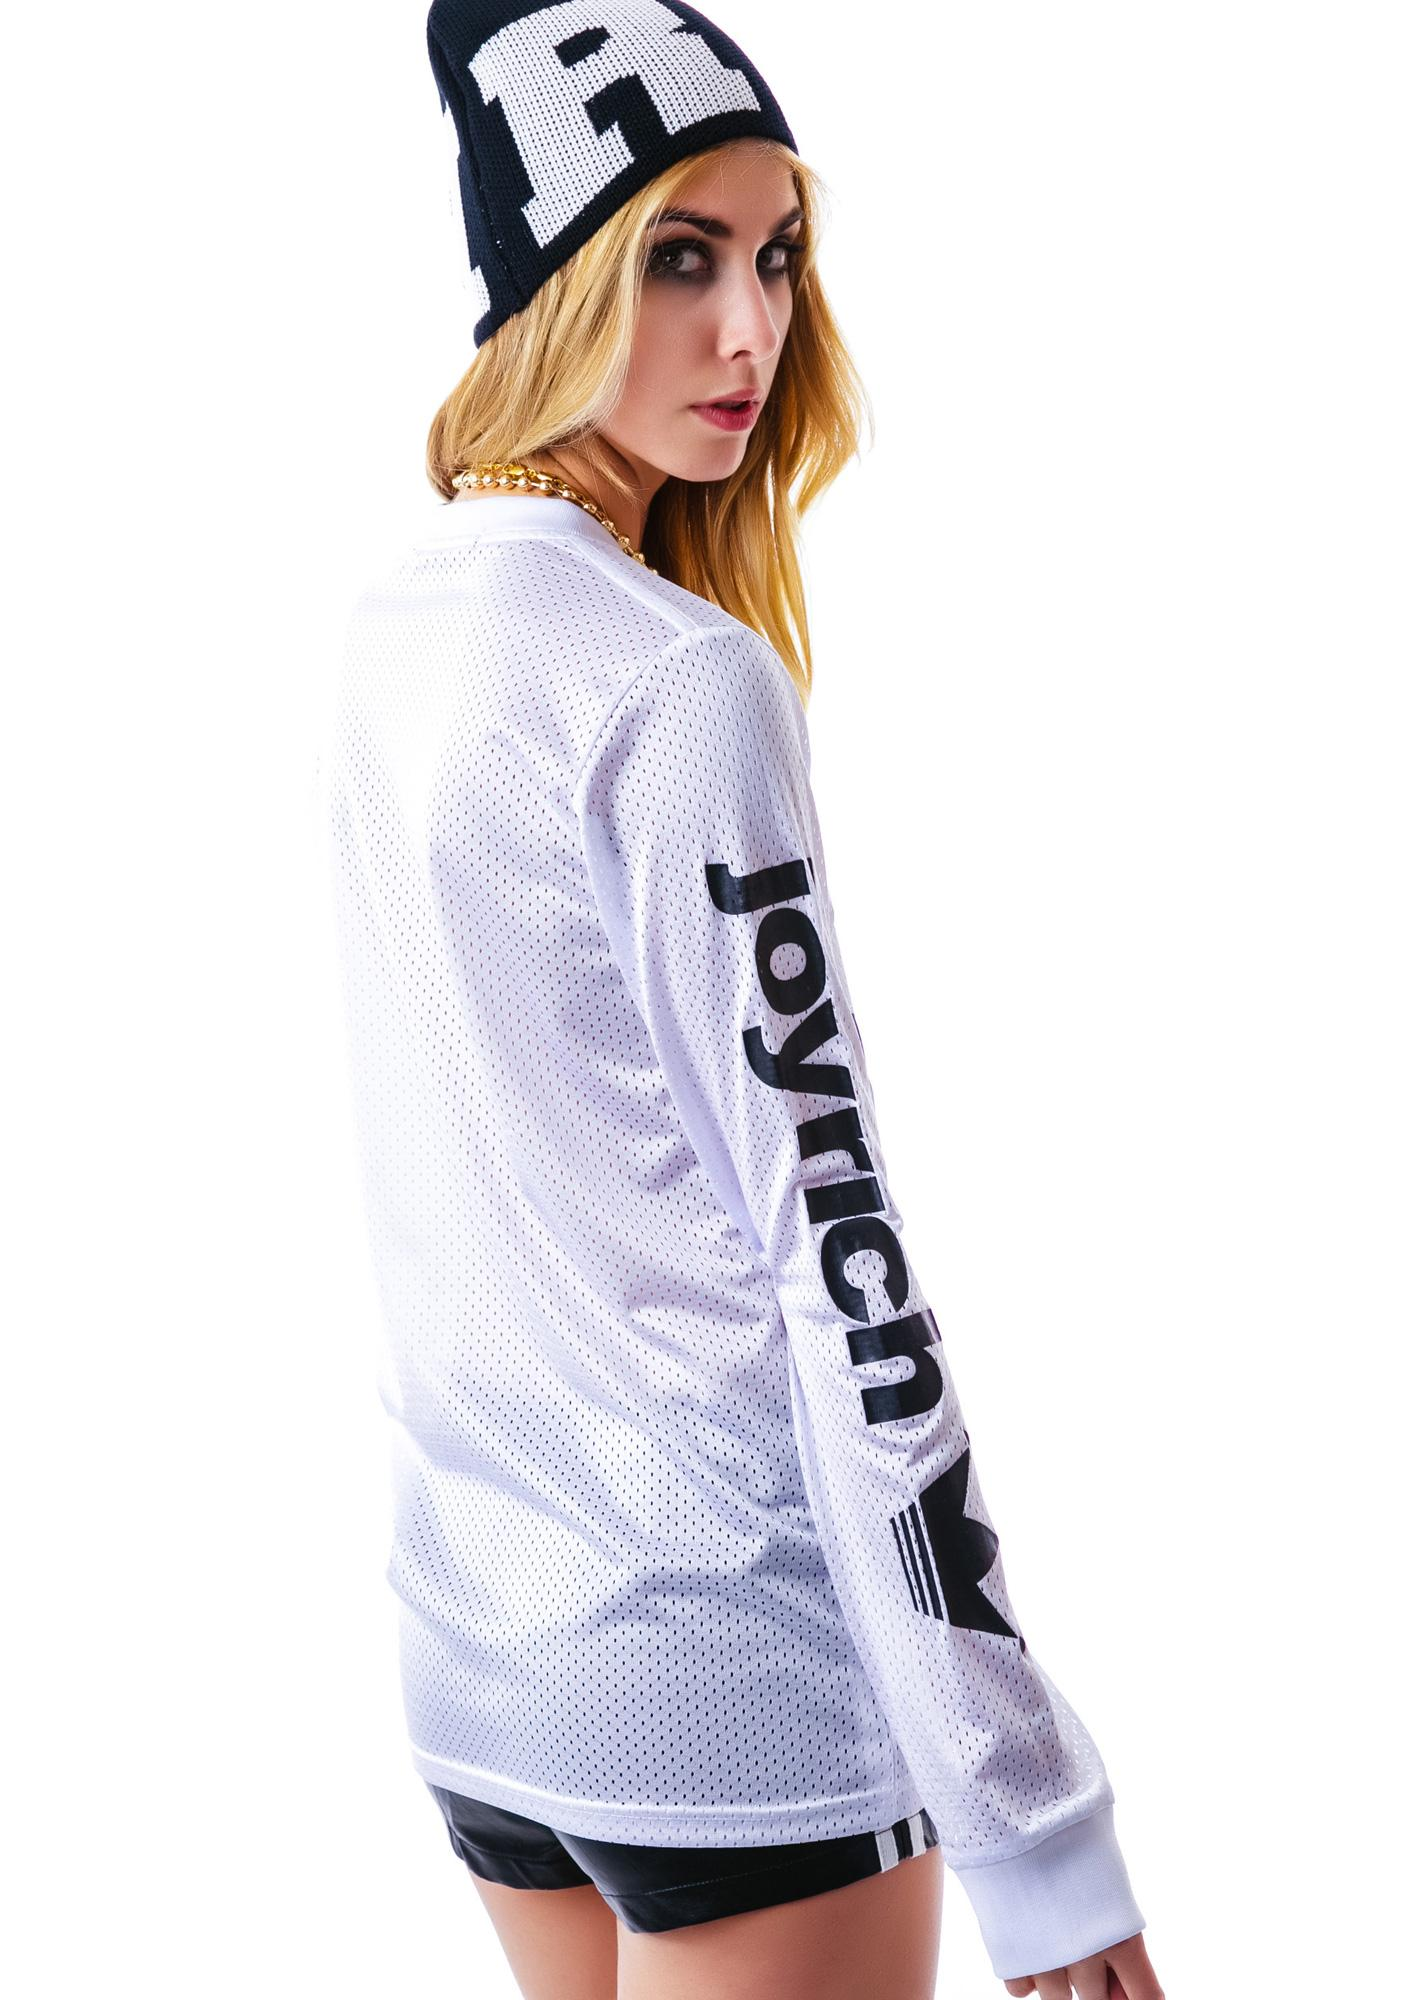 Joyrich Crown Joyrich Mesh Long Sleeve Tee